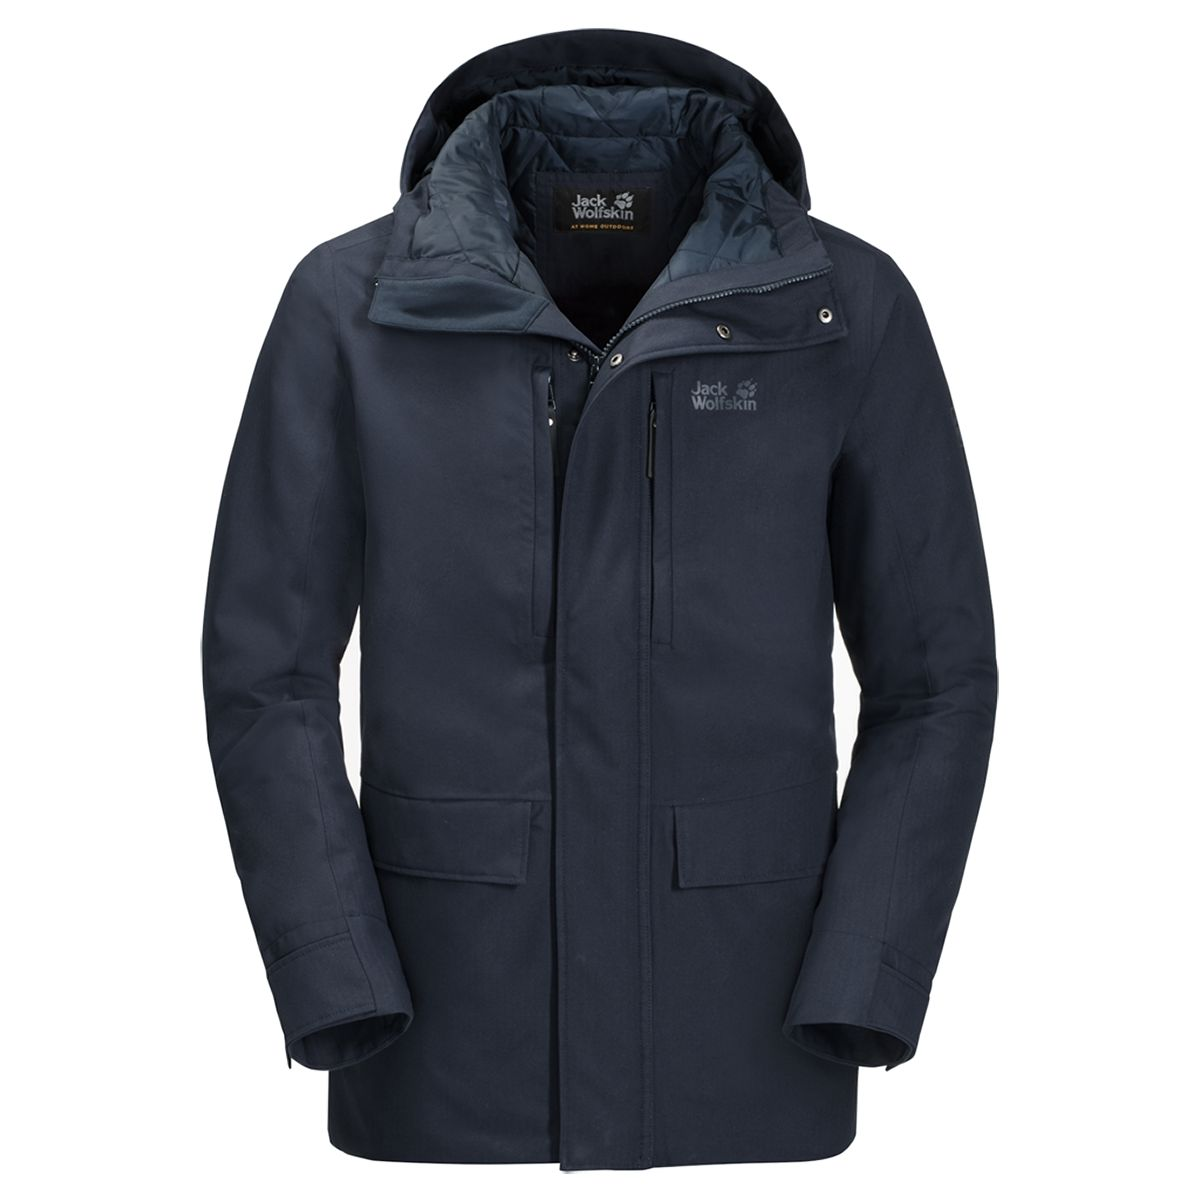 WEST COAST JACKET for men